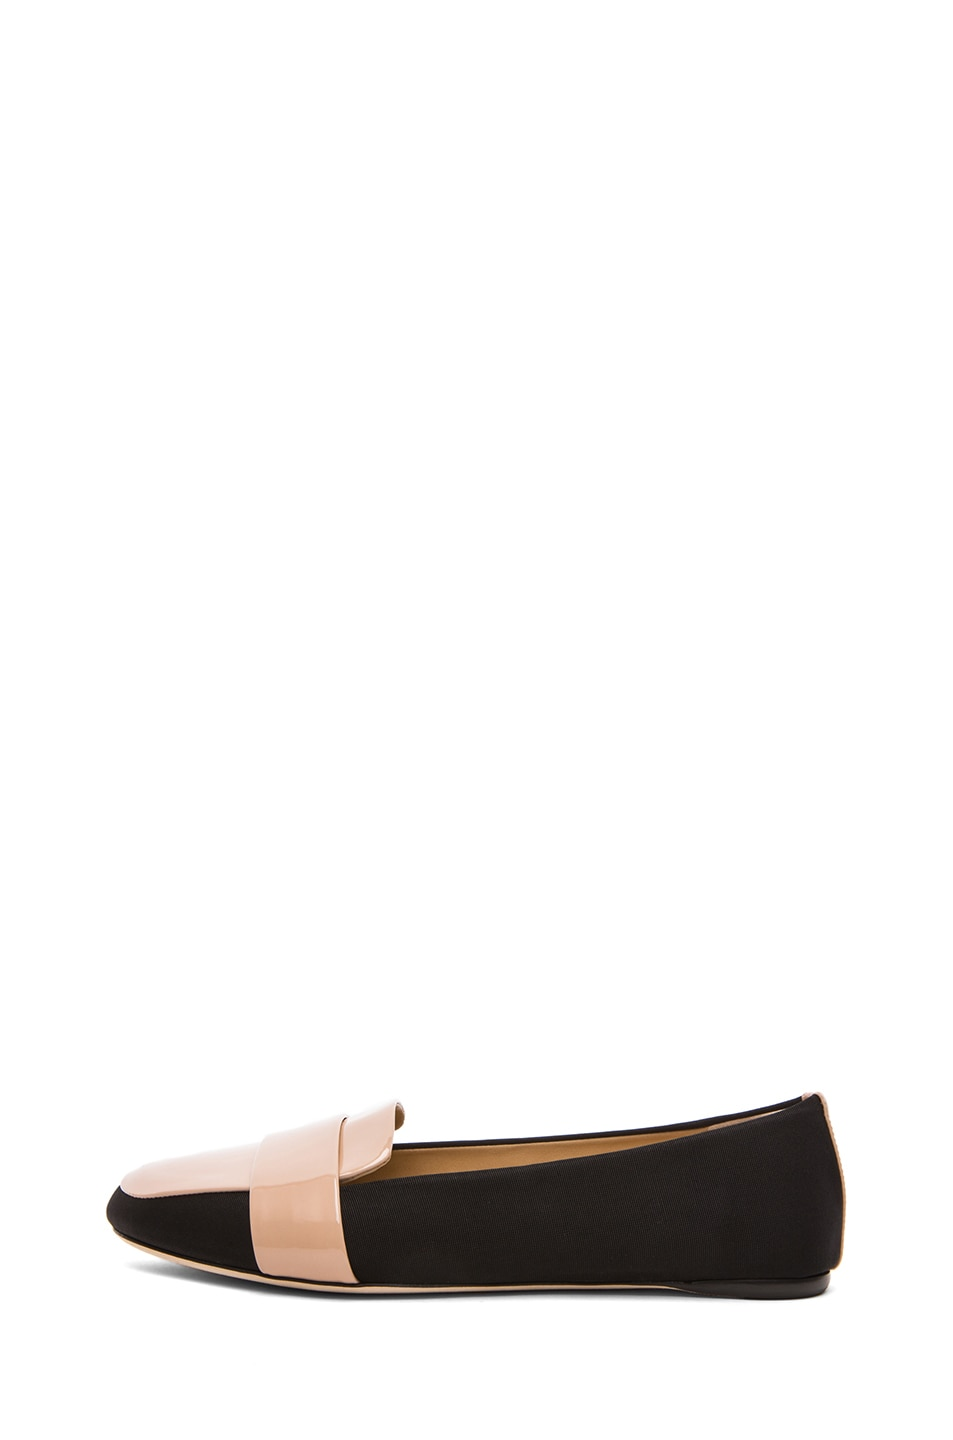 Image 1 of Reed Krakoff Patent Loafers in Black & Nude